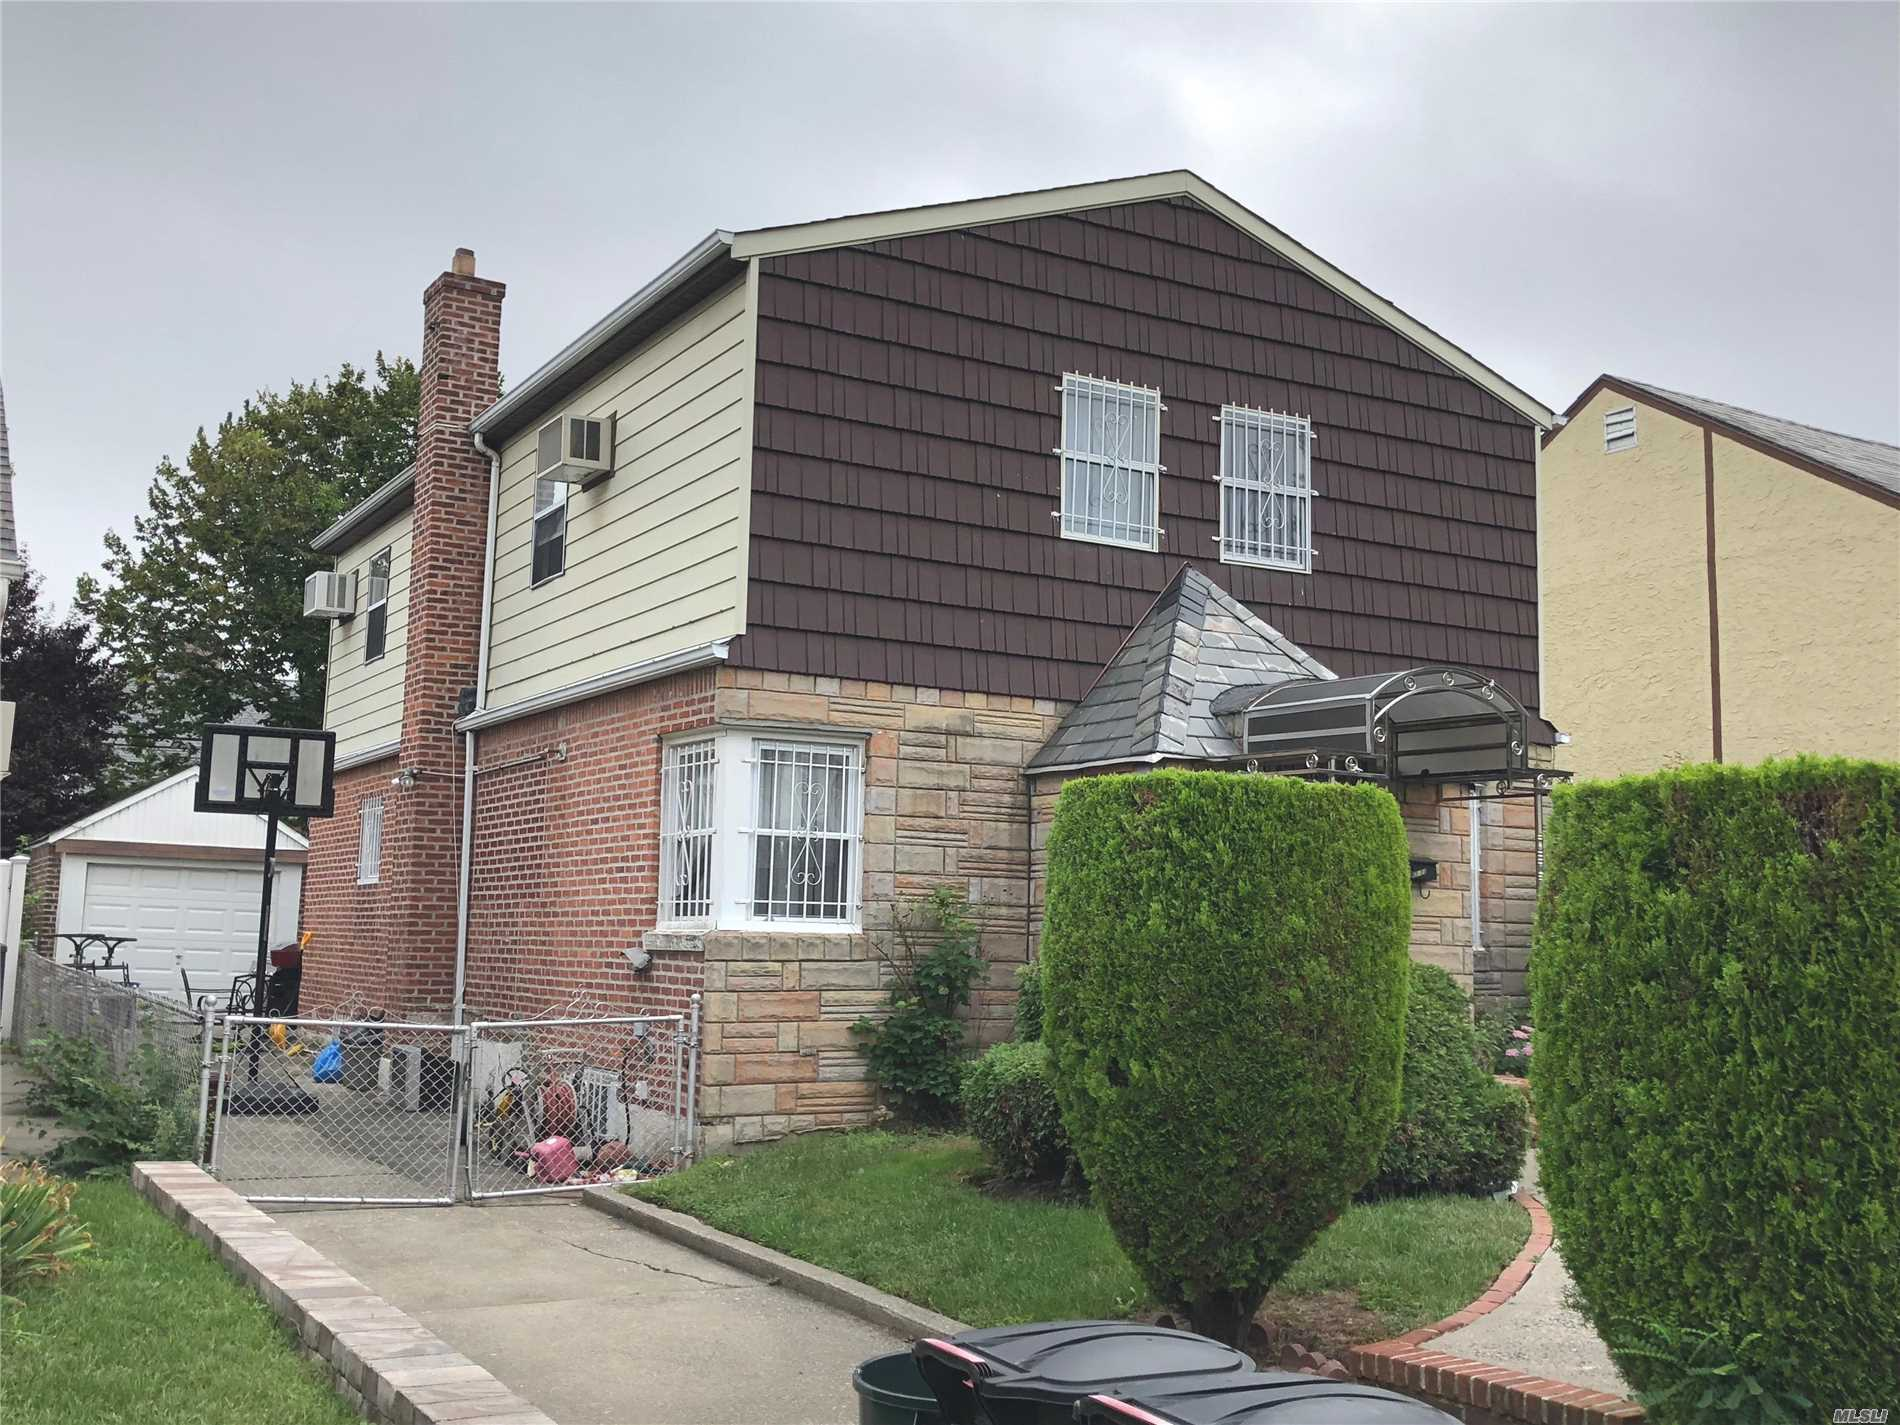 Beautiful Detached Brick/Frame Colonial Nestled On A Quiet Middle Block Section Of Fresh Meadows.Lot Size 40X100, Building Size 25X40. Huge 3 Bedrooms And 3 Full Baths And A Spacious Eat-In-Kitchen, Formal Dinner Rm, Extra Family Rm, With One Car Detached Car Garage And Private Backyard. 3 Mins Walking Distance To Bus # Q30, Q31, Q17, Q88, Qm1, Qm5, Qm7, Qm8, Qm31, Qm35